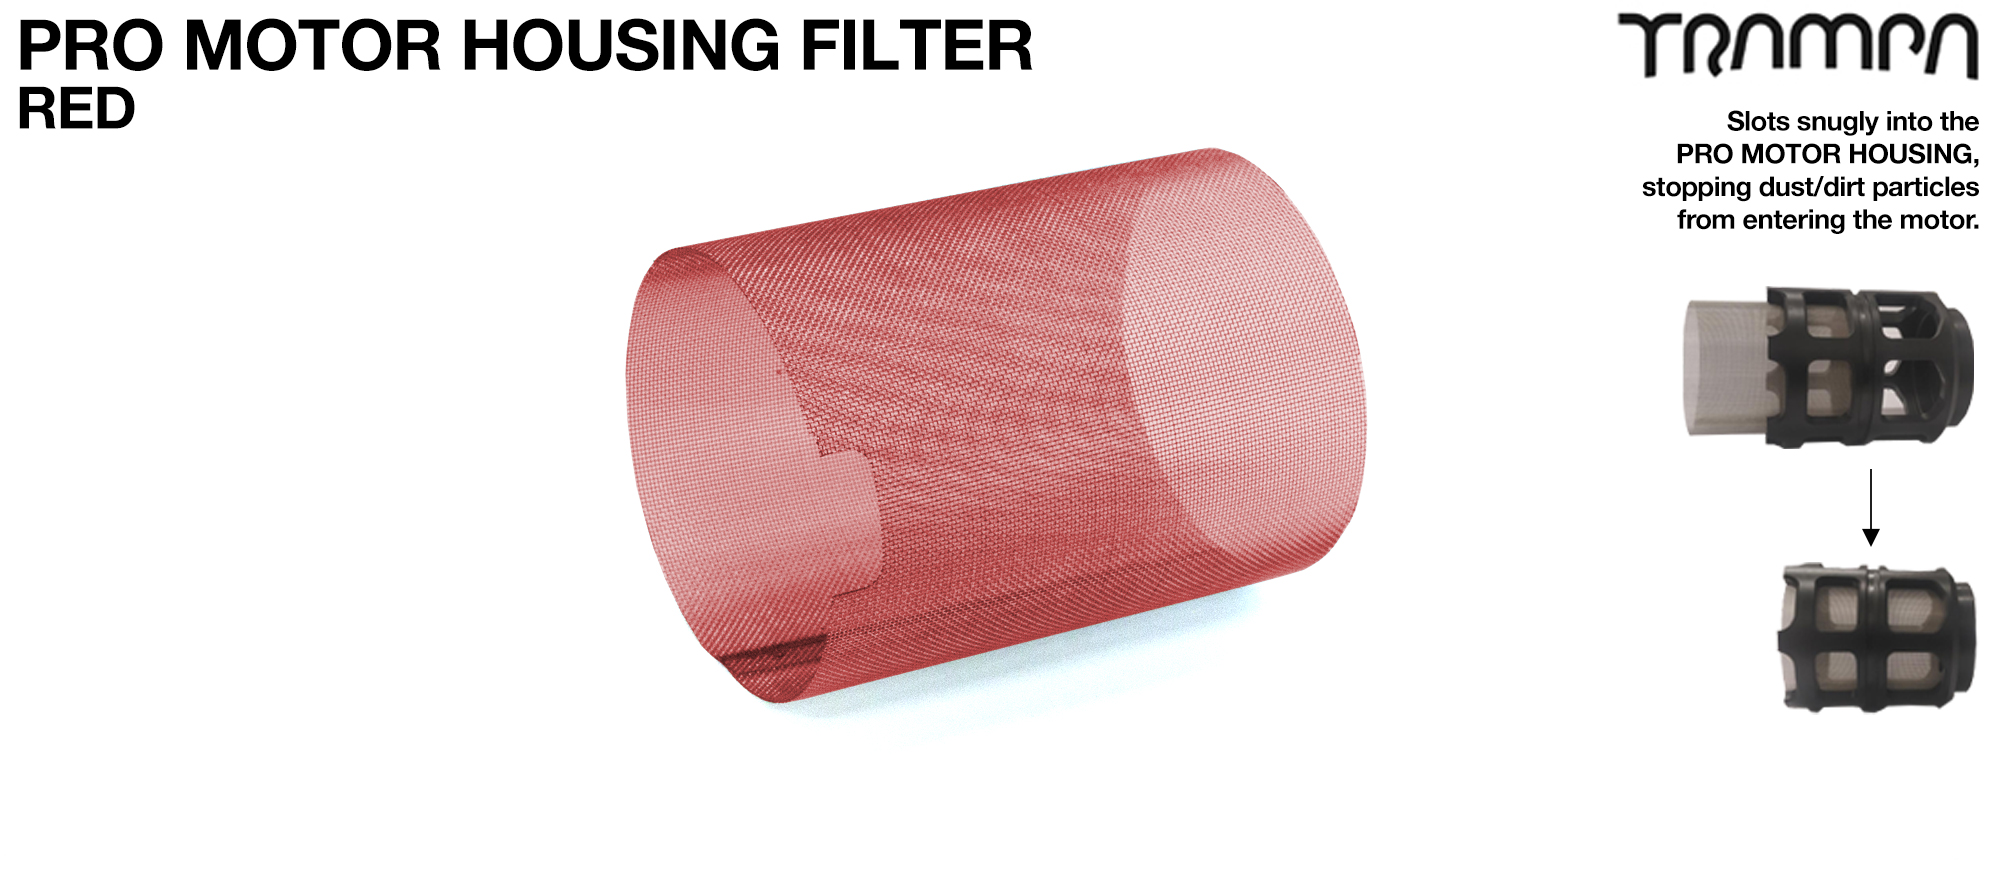 Motor Protection Cover MESH FILTER - RED